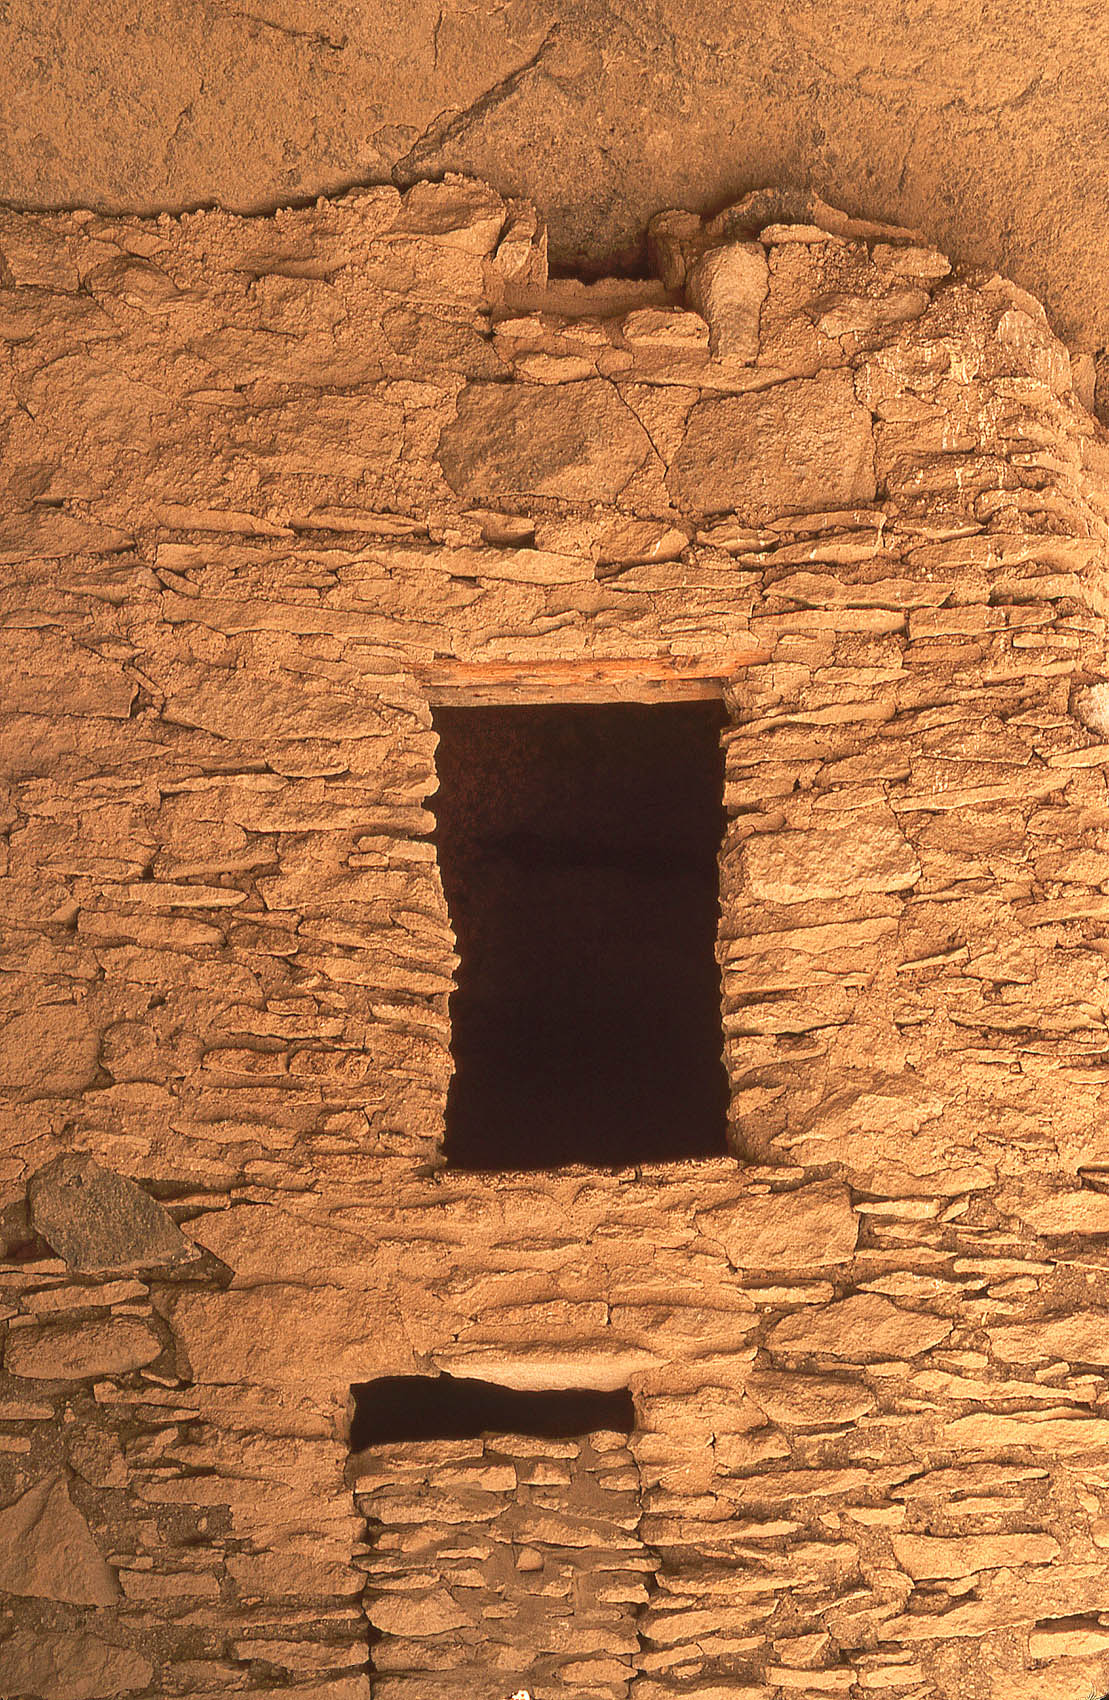 Ancestral Mogollon storage granary, John Annerino, Gila Cliff Dwellings National Monument NM, Gila River headwaters birthplace of Geronimo